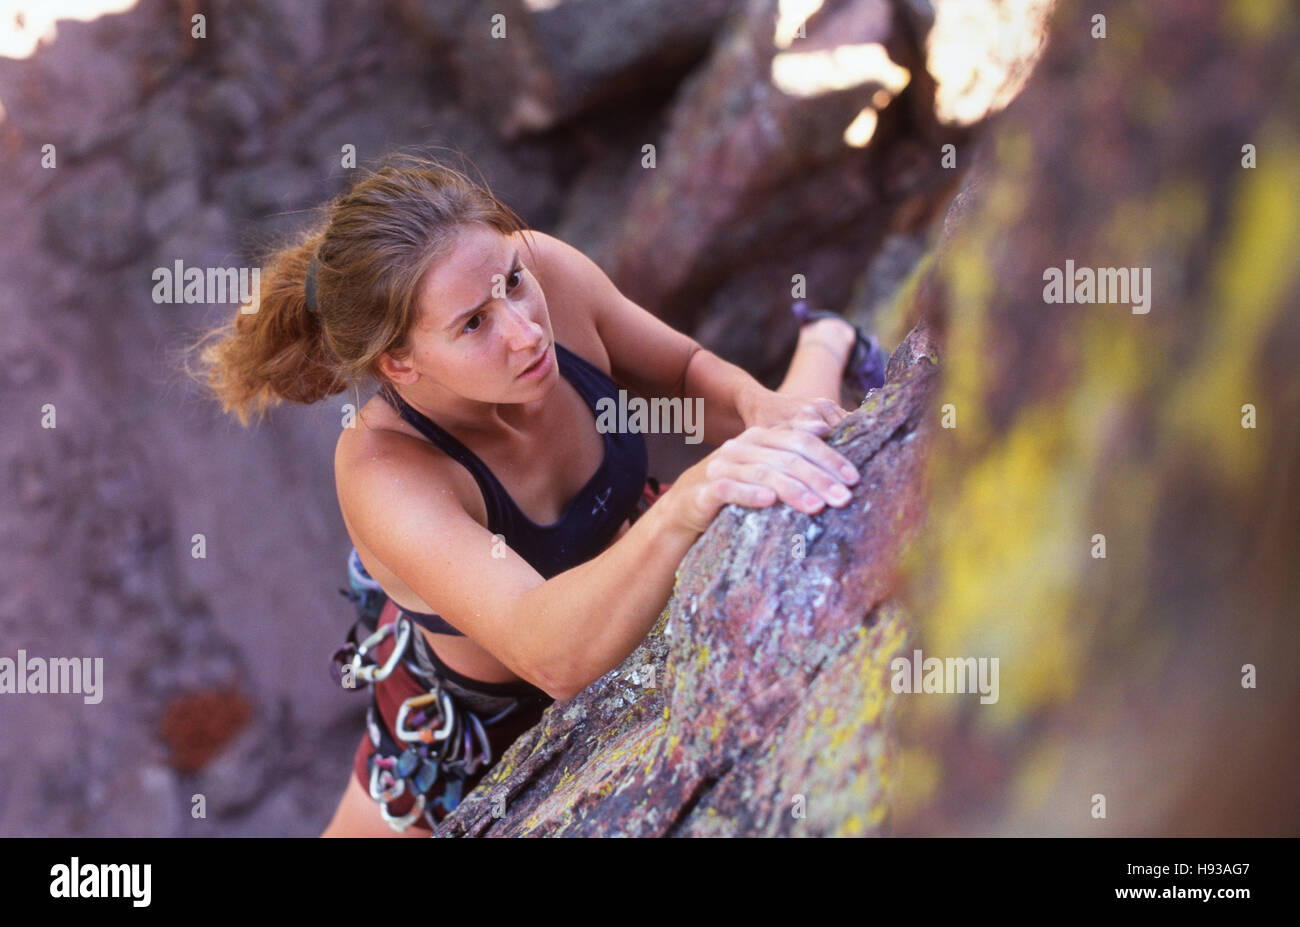 Woman climbing cliff Boulder, CO Photo Stock